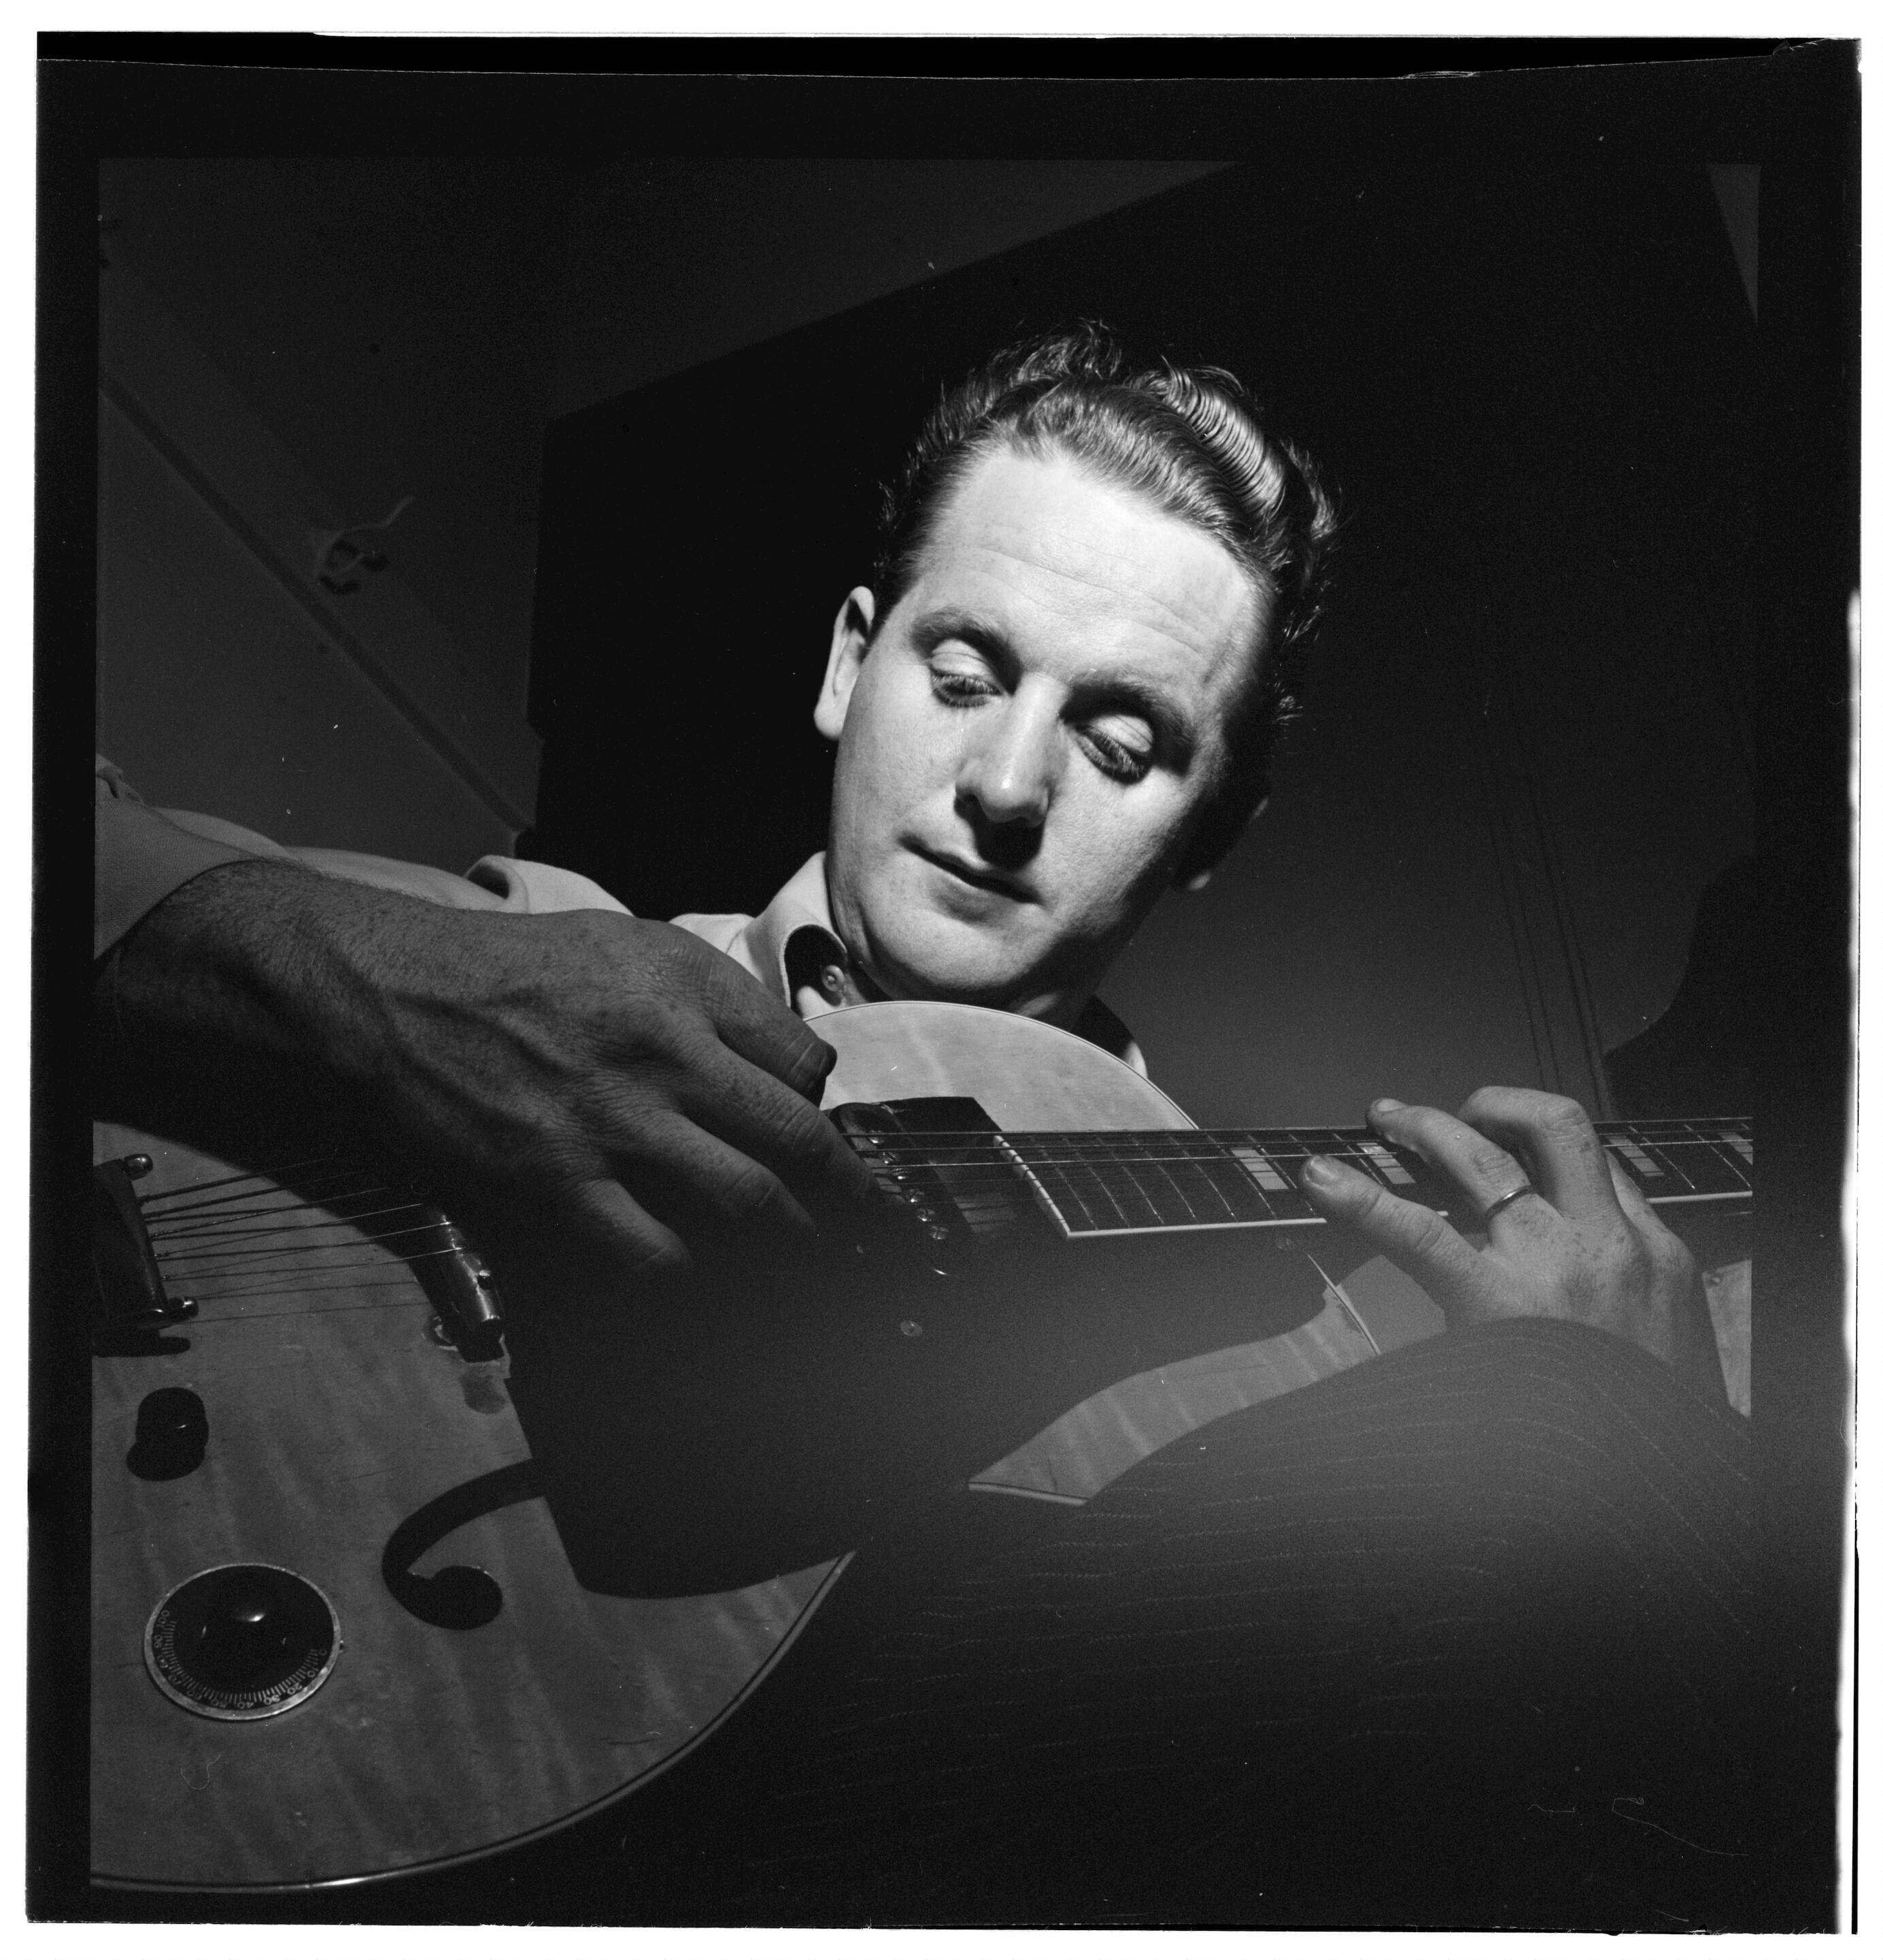 <table class=&quot;lightbox&quot;><tr><td colspan=2 class=&quot;lightbox-title&quot;>Portrait of Les Paul</td></tr><tr><td colspan=2 class=&quot;lightbox-caption&quot;>A younger Les Paul looks down at his guitar in this photograph from 1947. </td></tr><tr><td colspan=2 class=&quot;lightbox-spacer&quot;></td></tr><tr class=&quot;lightbox-detail&quot;><td class=&quot;cell-title&quot;>Source: </td><td class=&quot;cell-value&quot;>From the Library of Congress William P. Gottlieb Collection<br /><a href=&quot;https://www.loc.gov/item/gottlieb.06991/&quot; target=&quot;_blank&quot;>Library of Congress</a></td></tr><tr class=&quot;filler-row&quot;><td colspan=2>&nbsp;</td></tr></table>